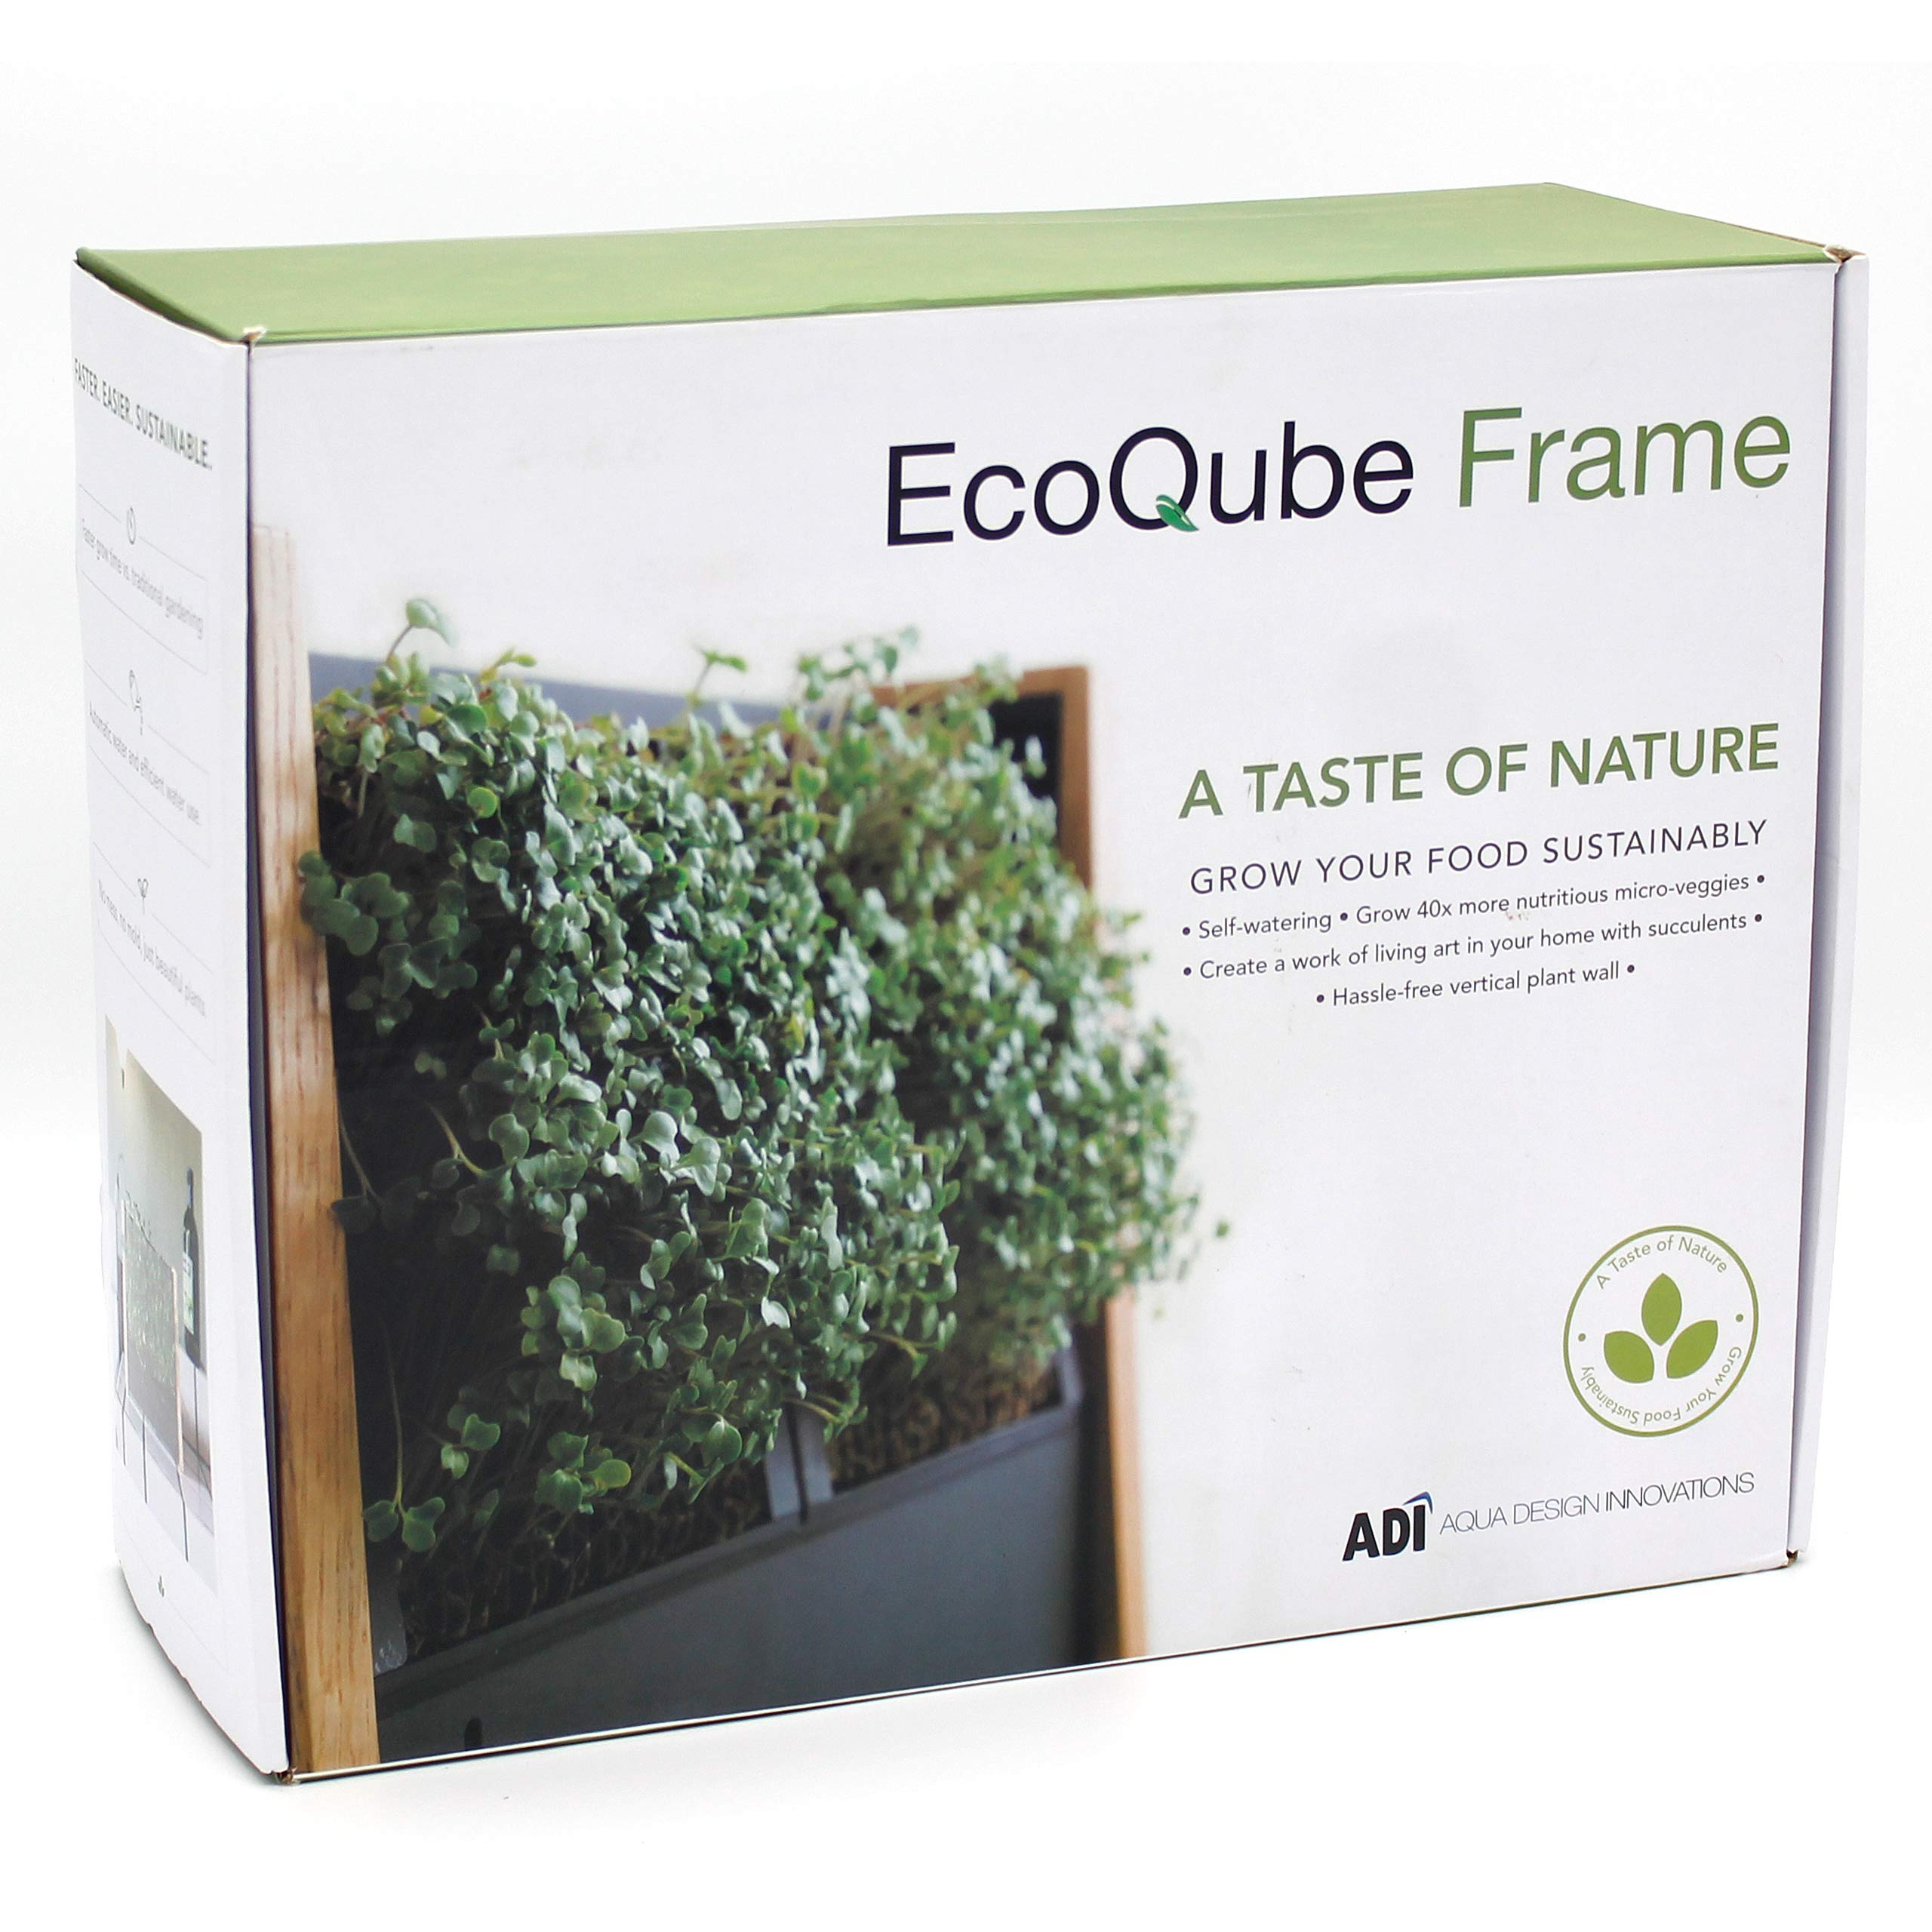 EcoQube Frame - Easy Sprouting Kit Garden for Sprouting Seeds, Herbs, Microgreens, and Broccoli Sprouts (EcoQube Frame (with Broccoli)) by EcoQube